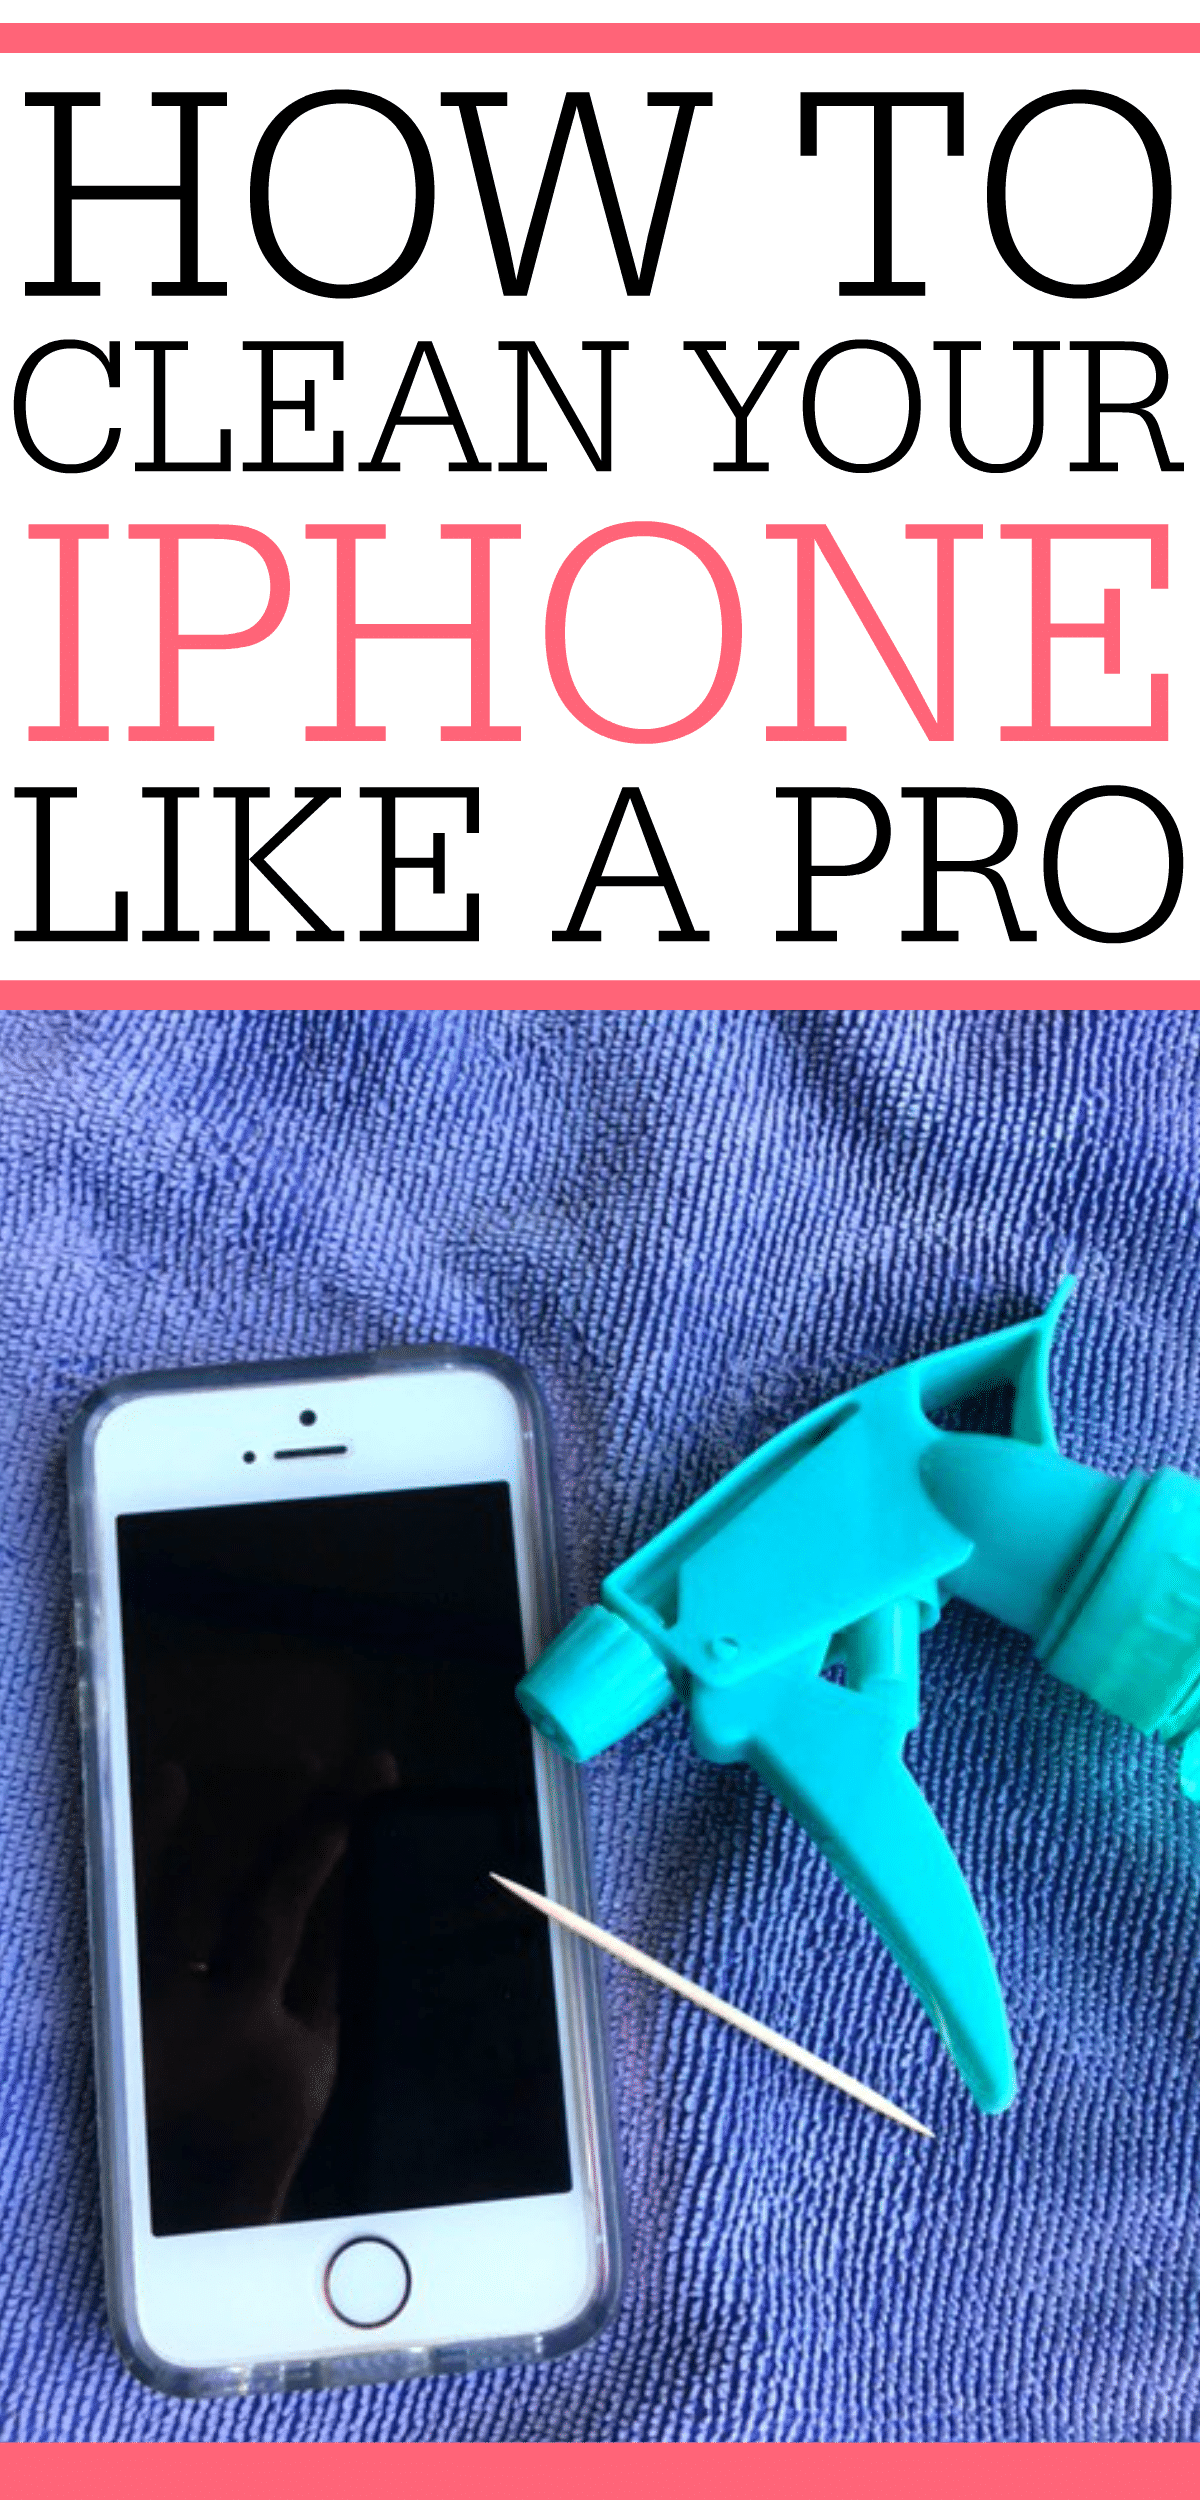 how to clean your iphone like a pro frugally blonde. Black Bedroom Furniture Sets. Home Design Ideas